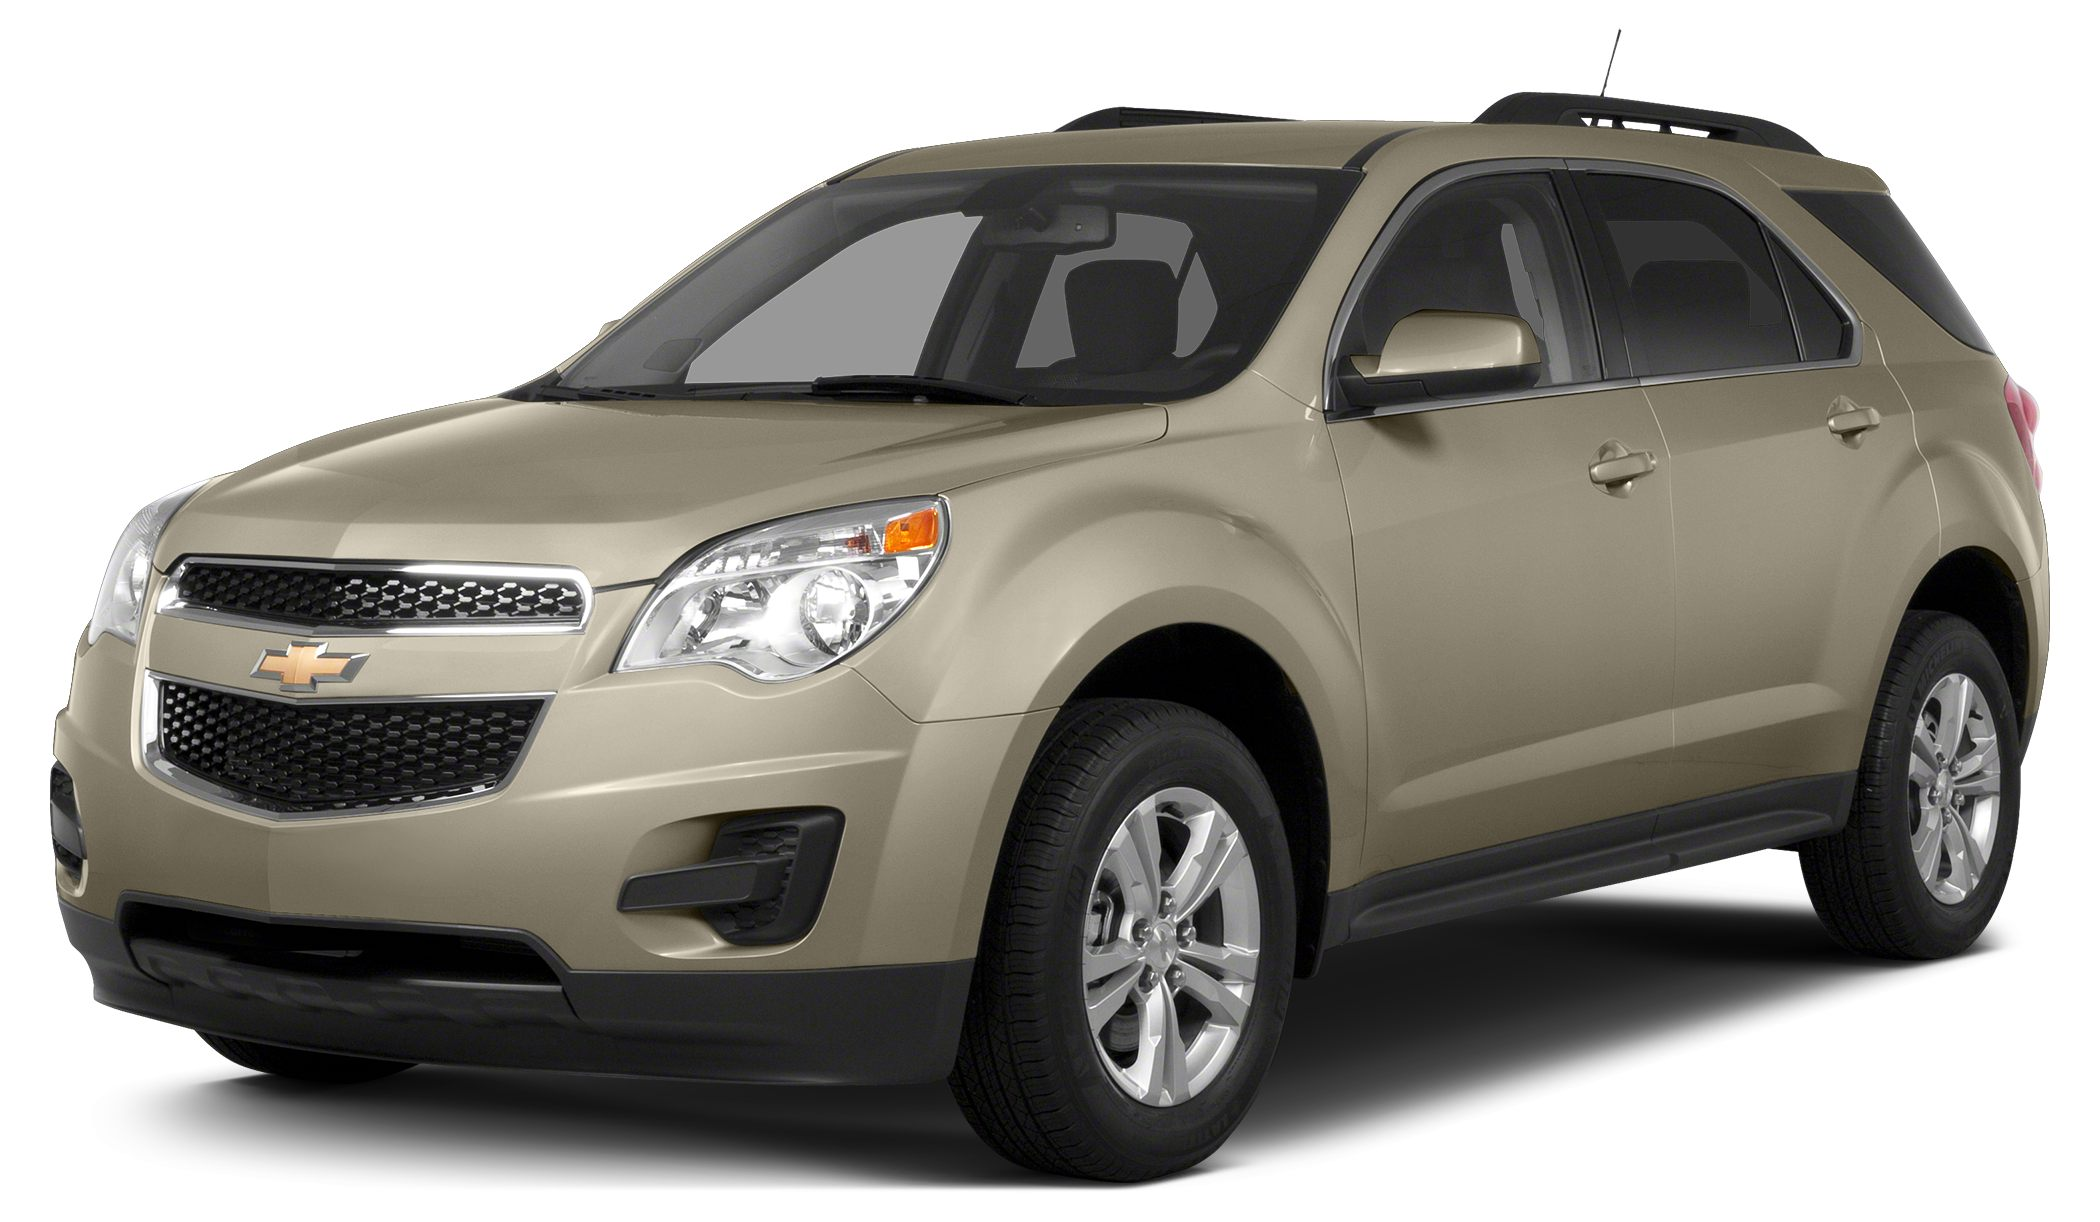 2013 Chevrolet Equinox 1LT Look at this 2013 Chevrolet Equinox LT Its Automatic transmission and